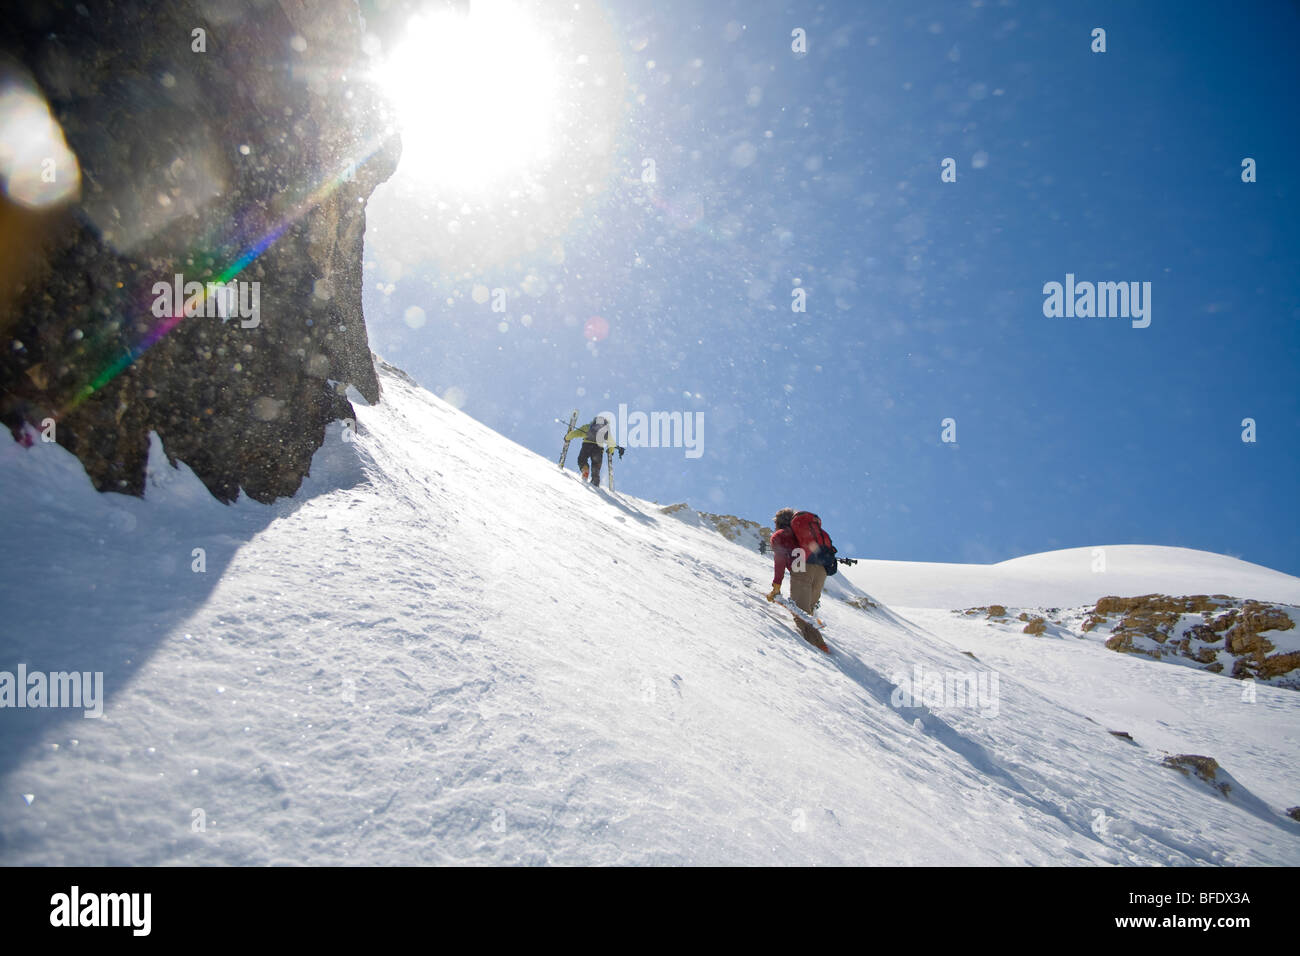 Skiers making their way up the White Pyramid, Mt Chephren, Icefields Parkway, Banff National Park, Alberta, Canada - Stock Image